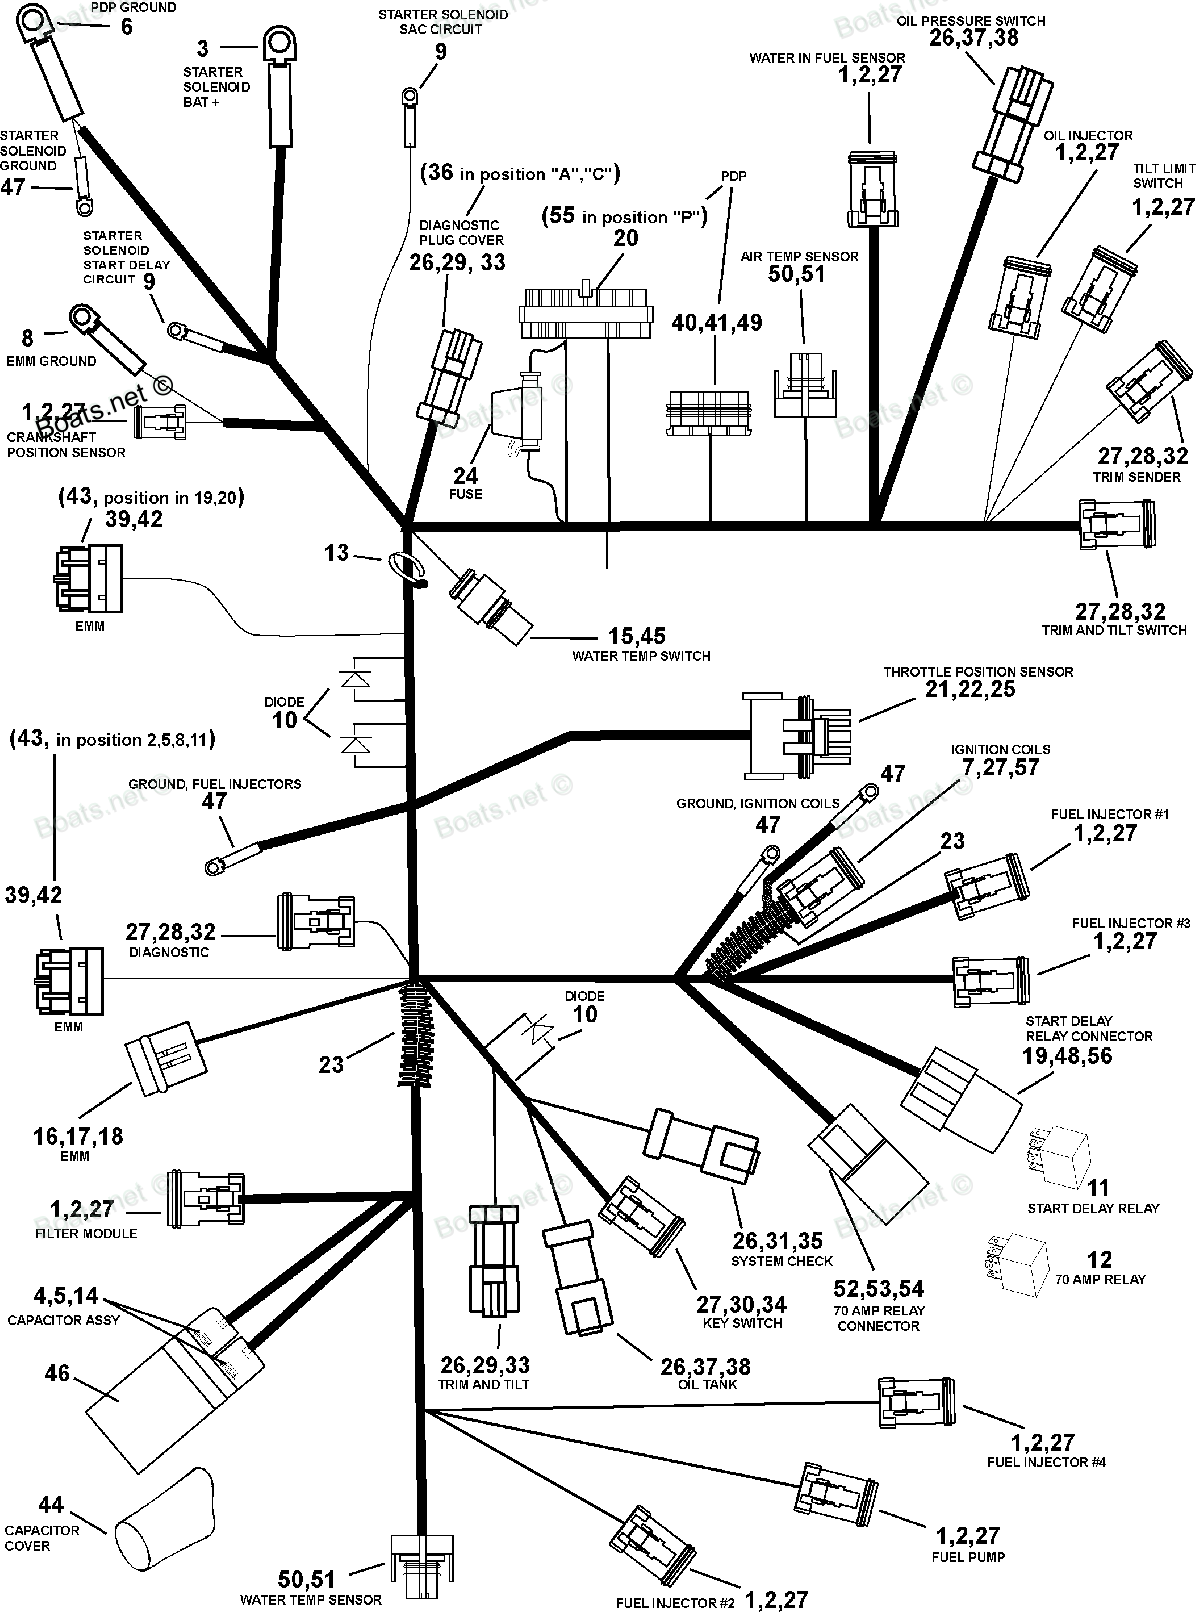 I Have A 02 75 Hp Fecht With No Power To Key Sw So Start Wire Harness Components Graphic